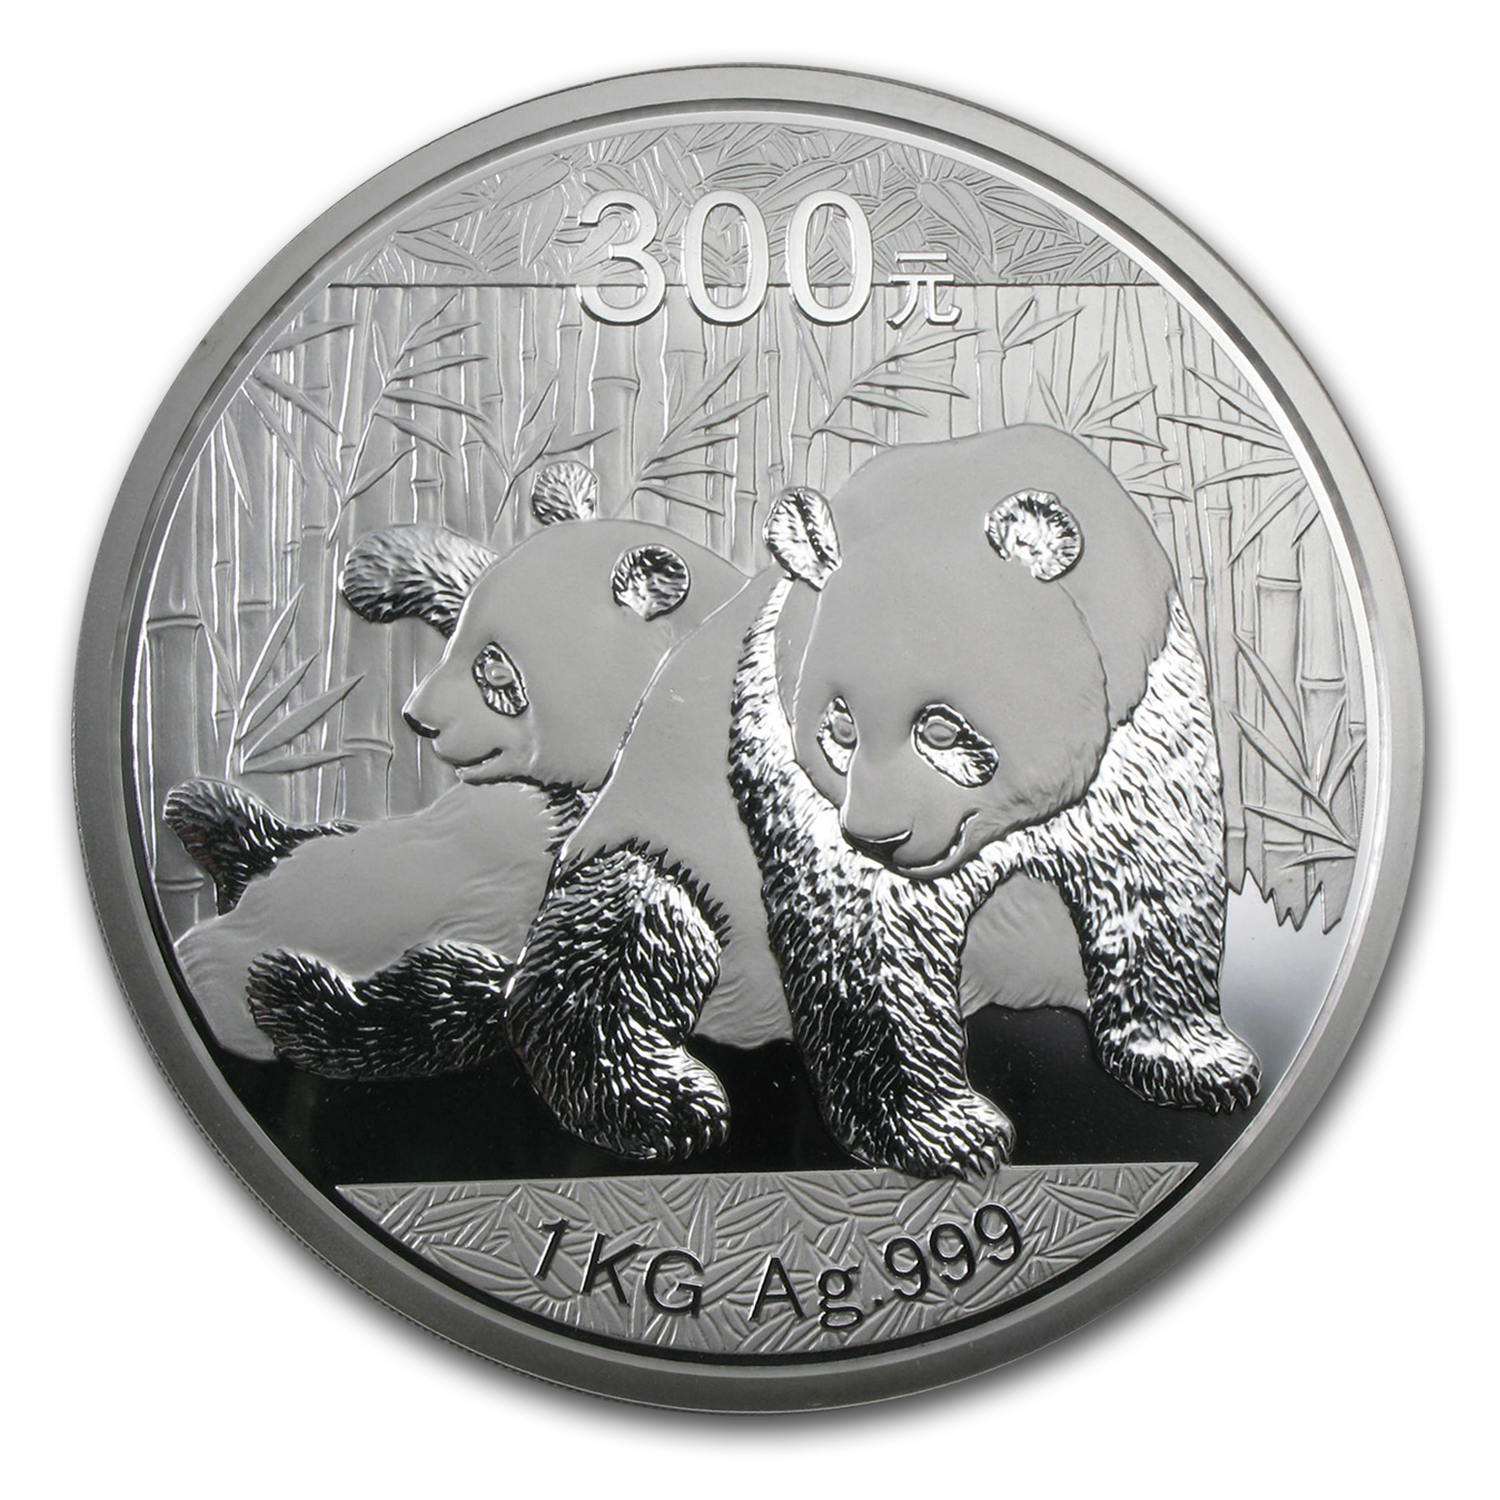 2010 China 1 kilo Silver Panda Proof (w/Box & COA)